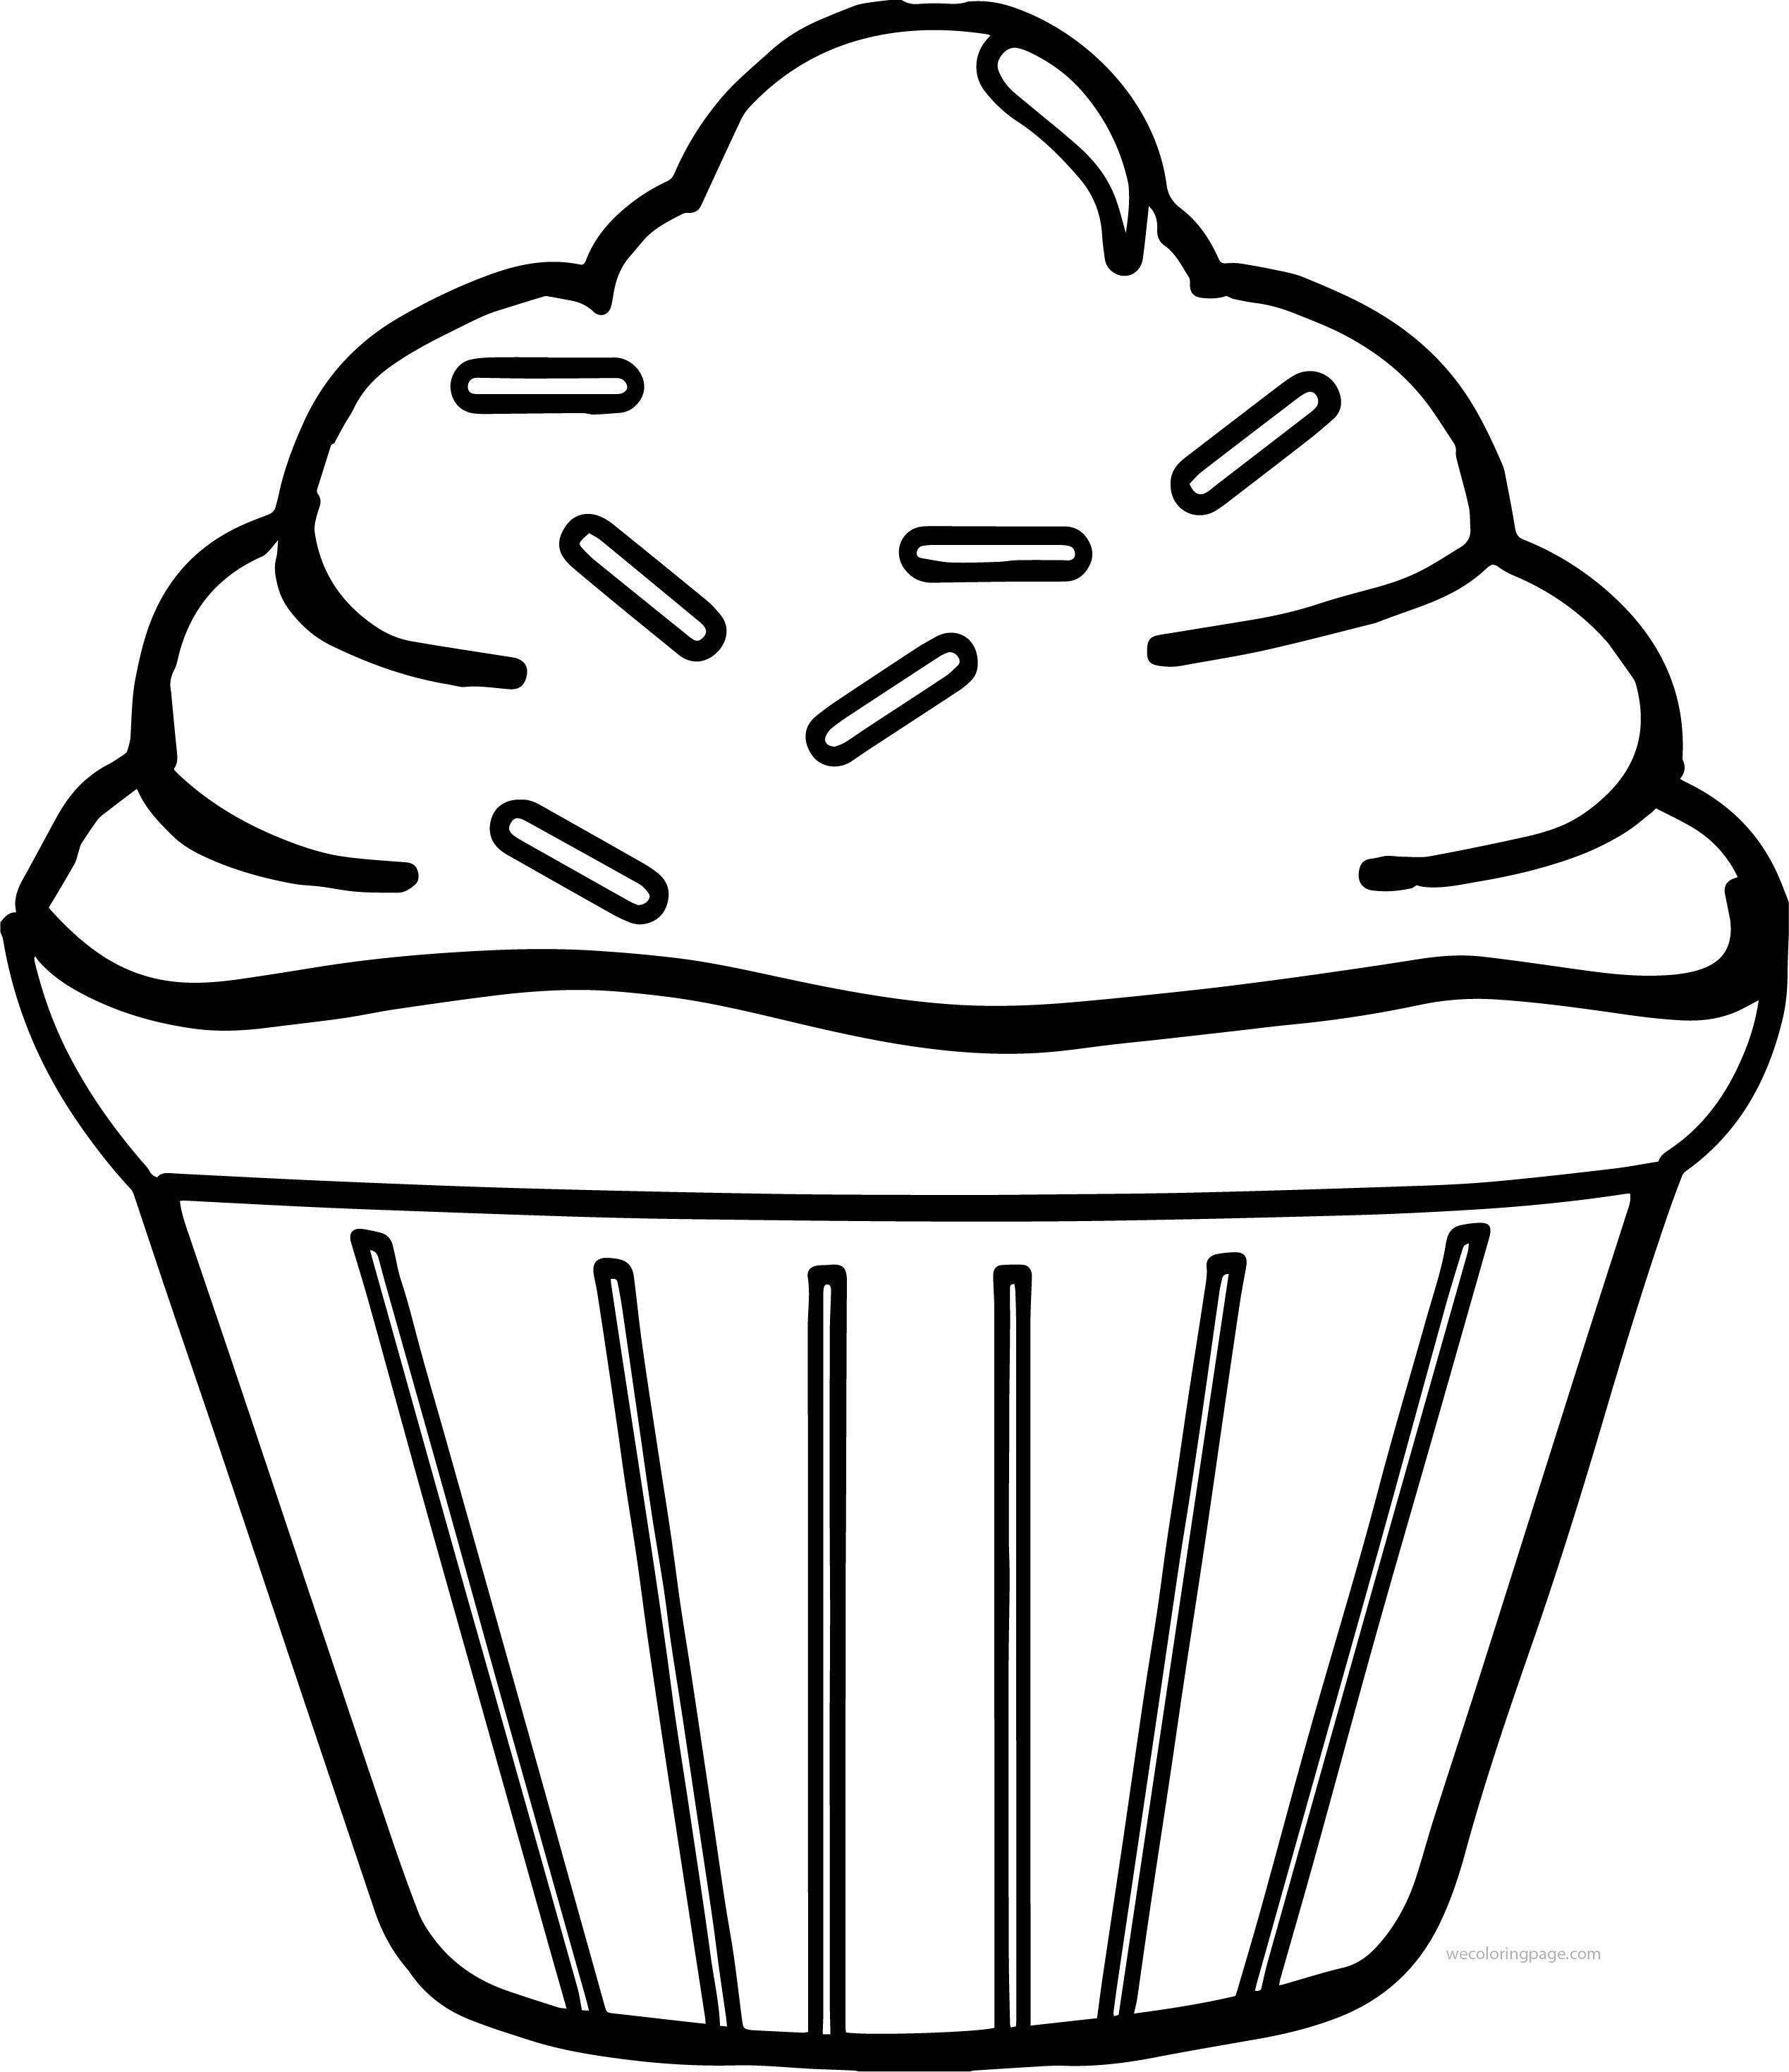 easy cupcake coloring pages coloring page cupcake cupcake coloring pages easy pages coloring easy cupcake